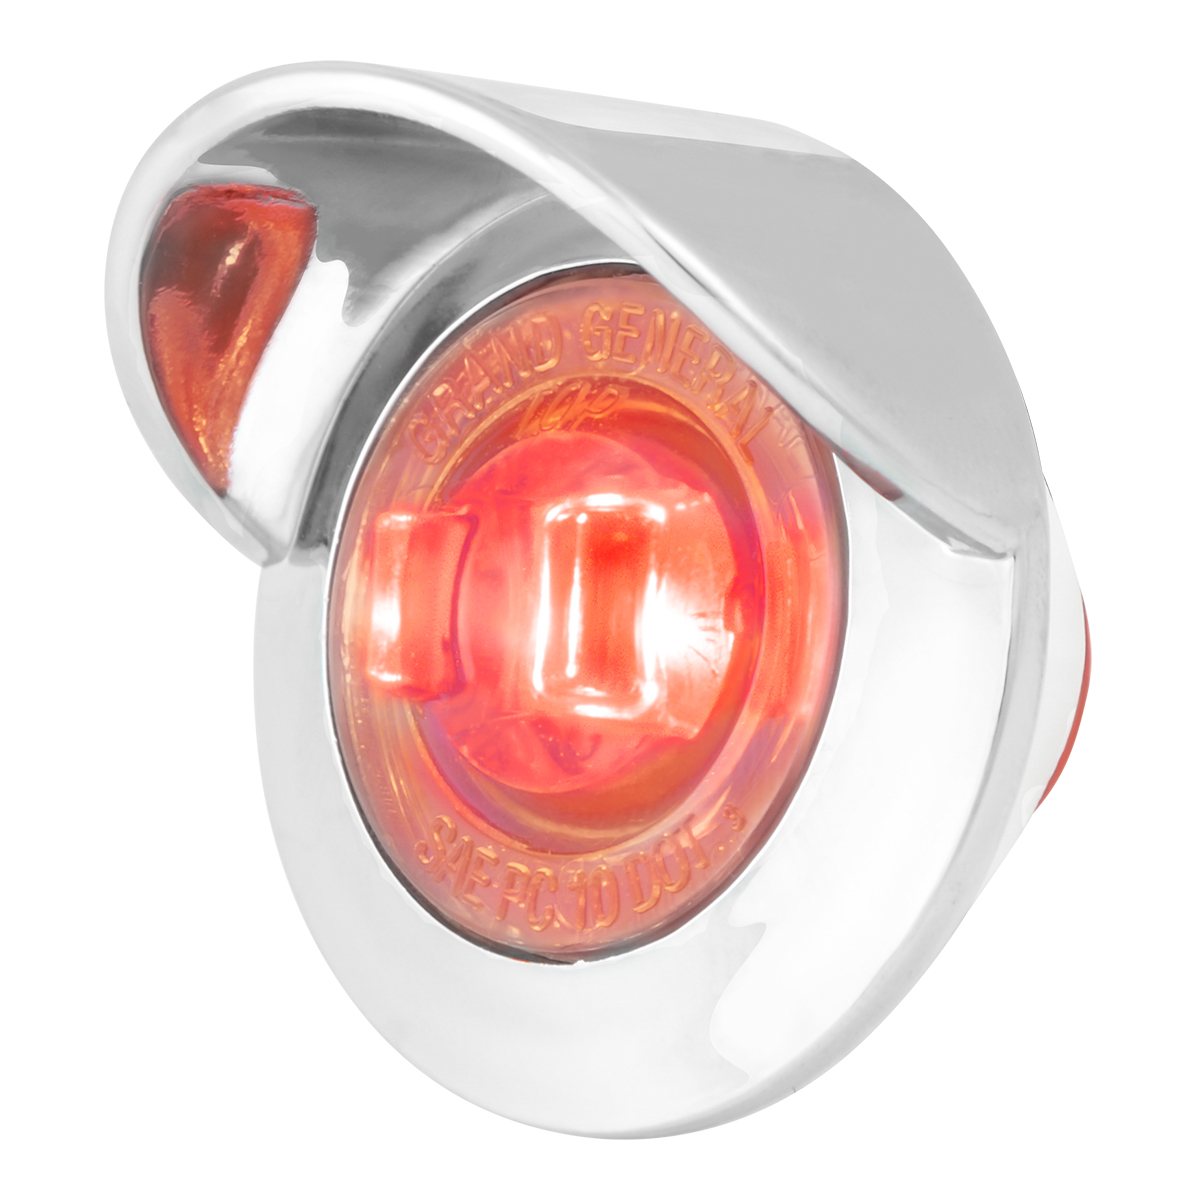 "75253 1"" Dia. Mini Push/Screw-in Wide Angle LED Marker Light w/ Chrome Bezel & Visor"